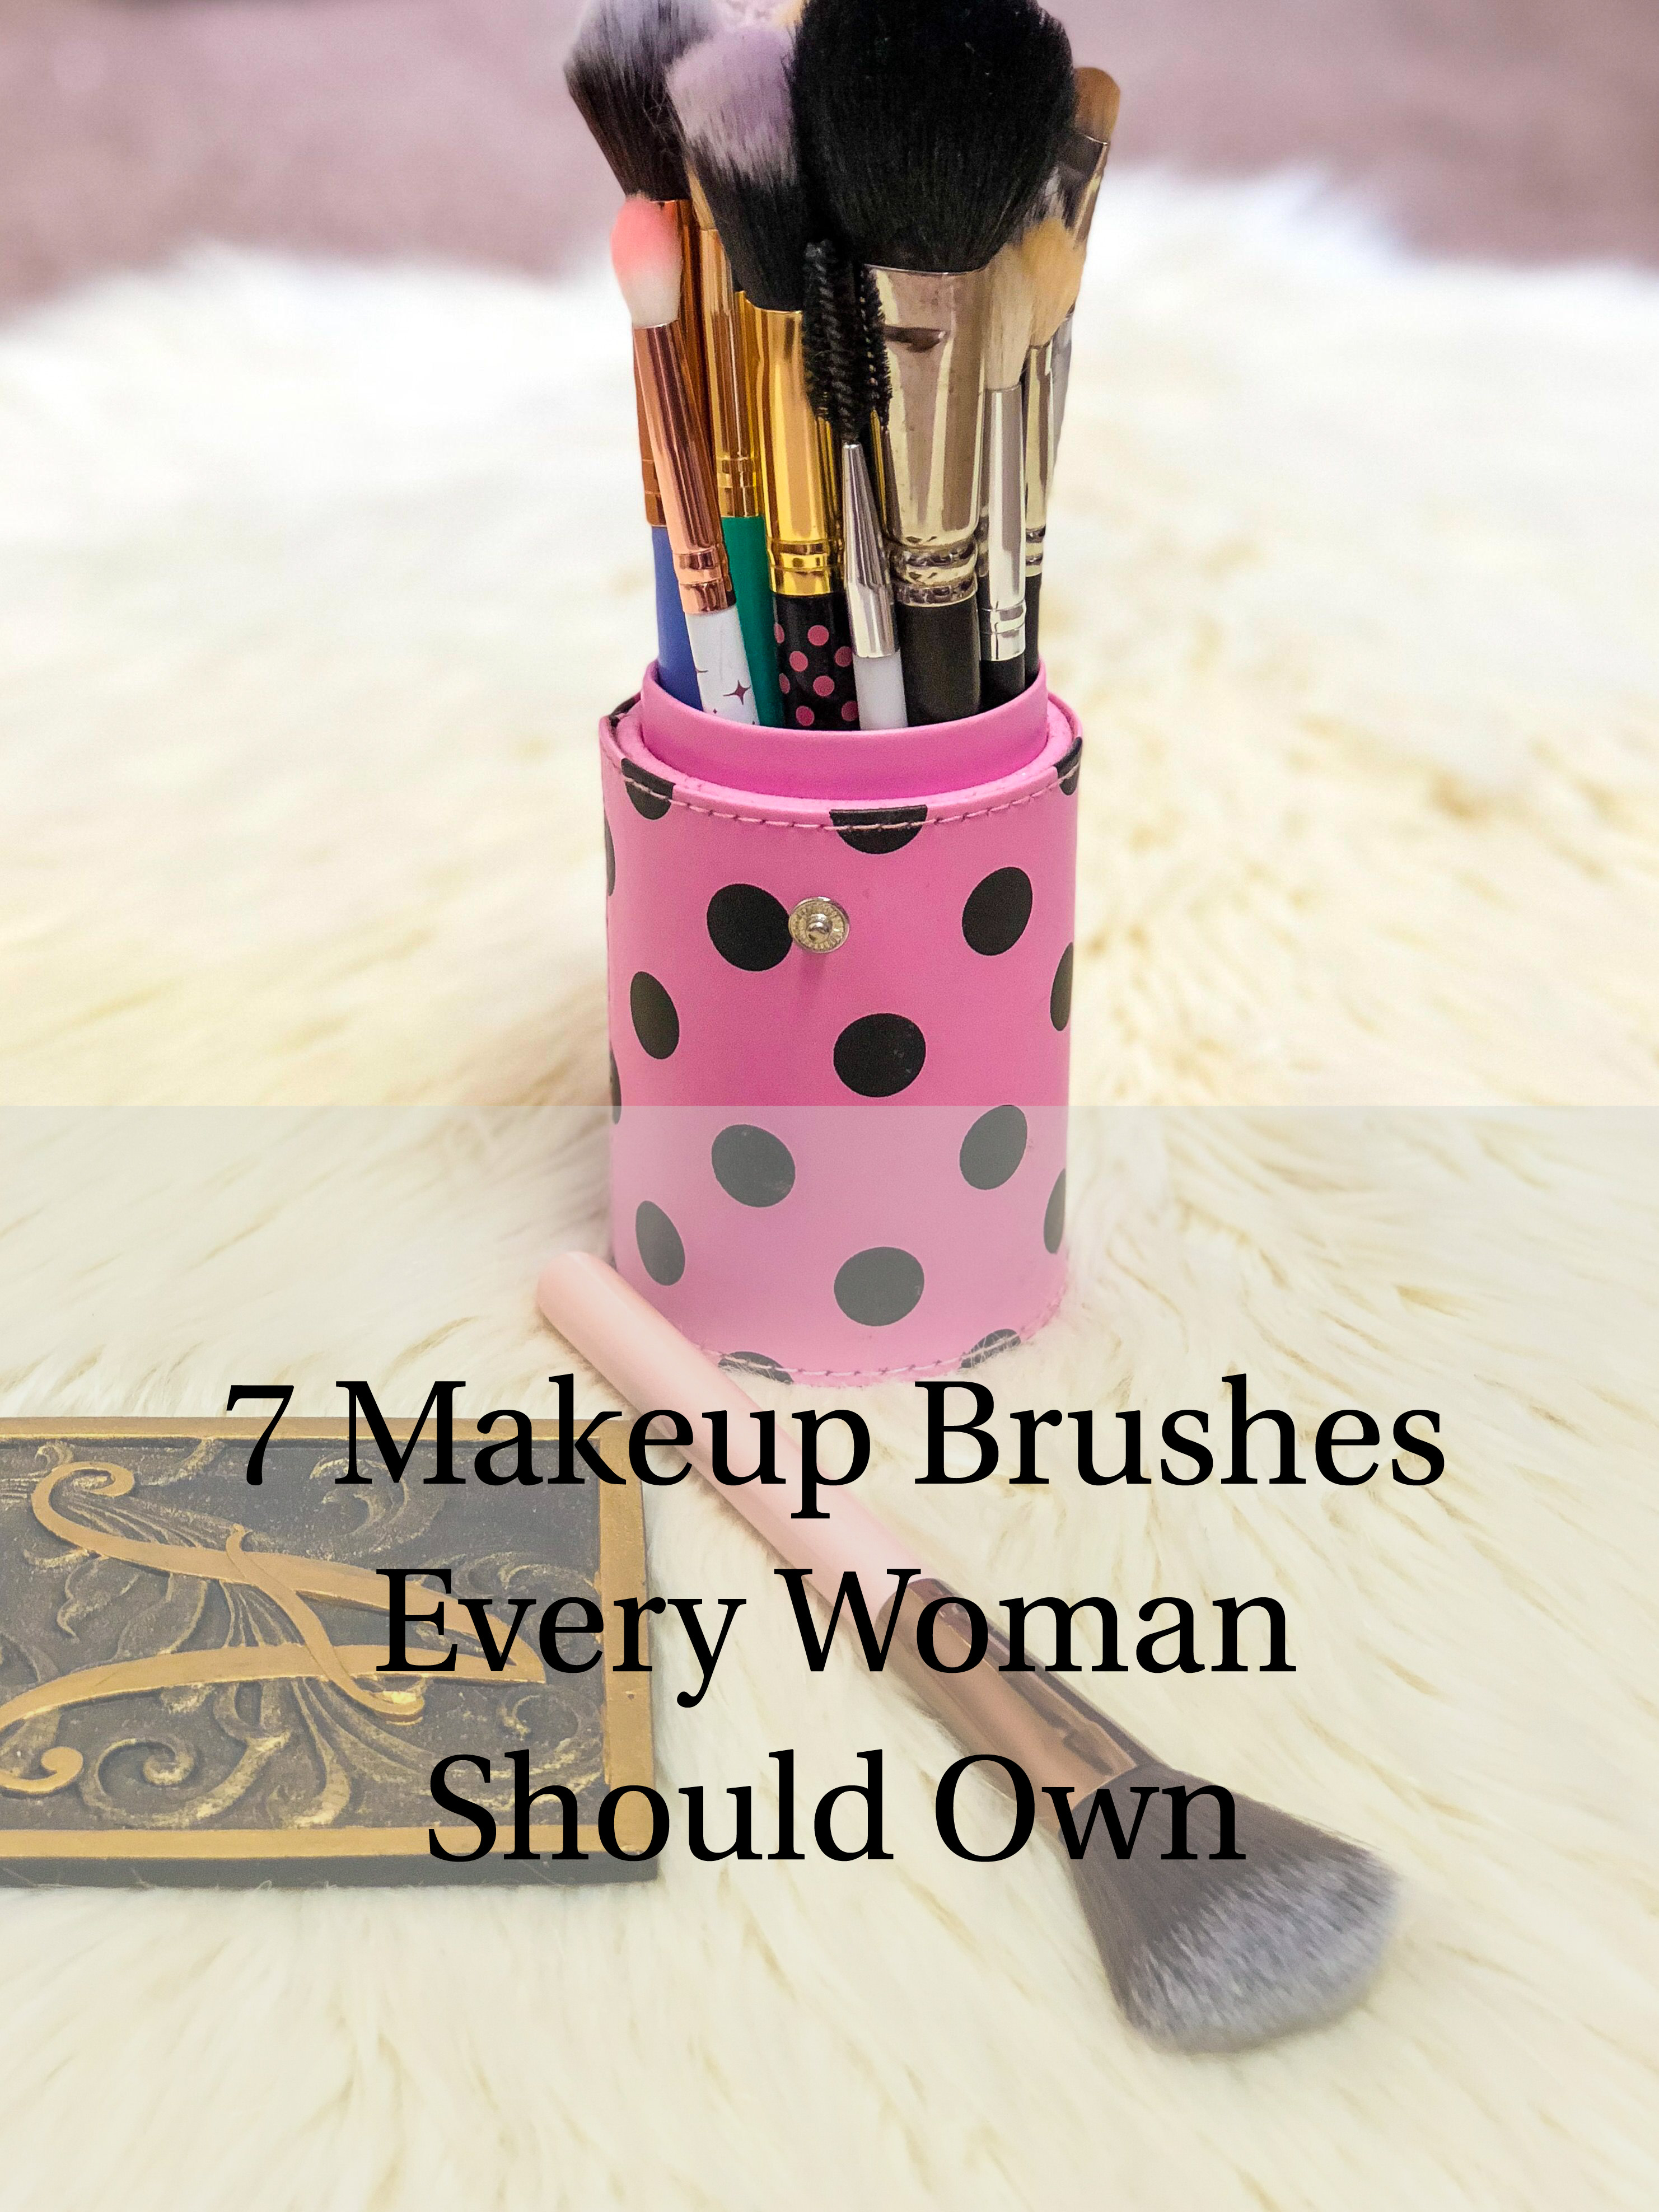 The 7 Makeup Brushes Every Woman Should Own